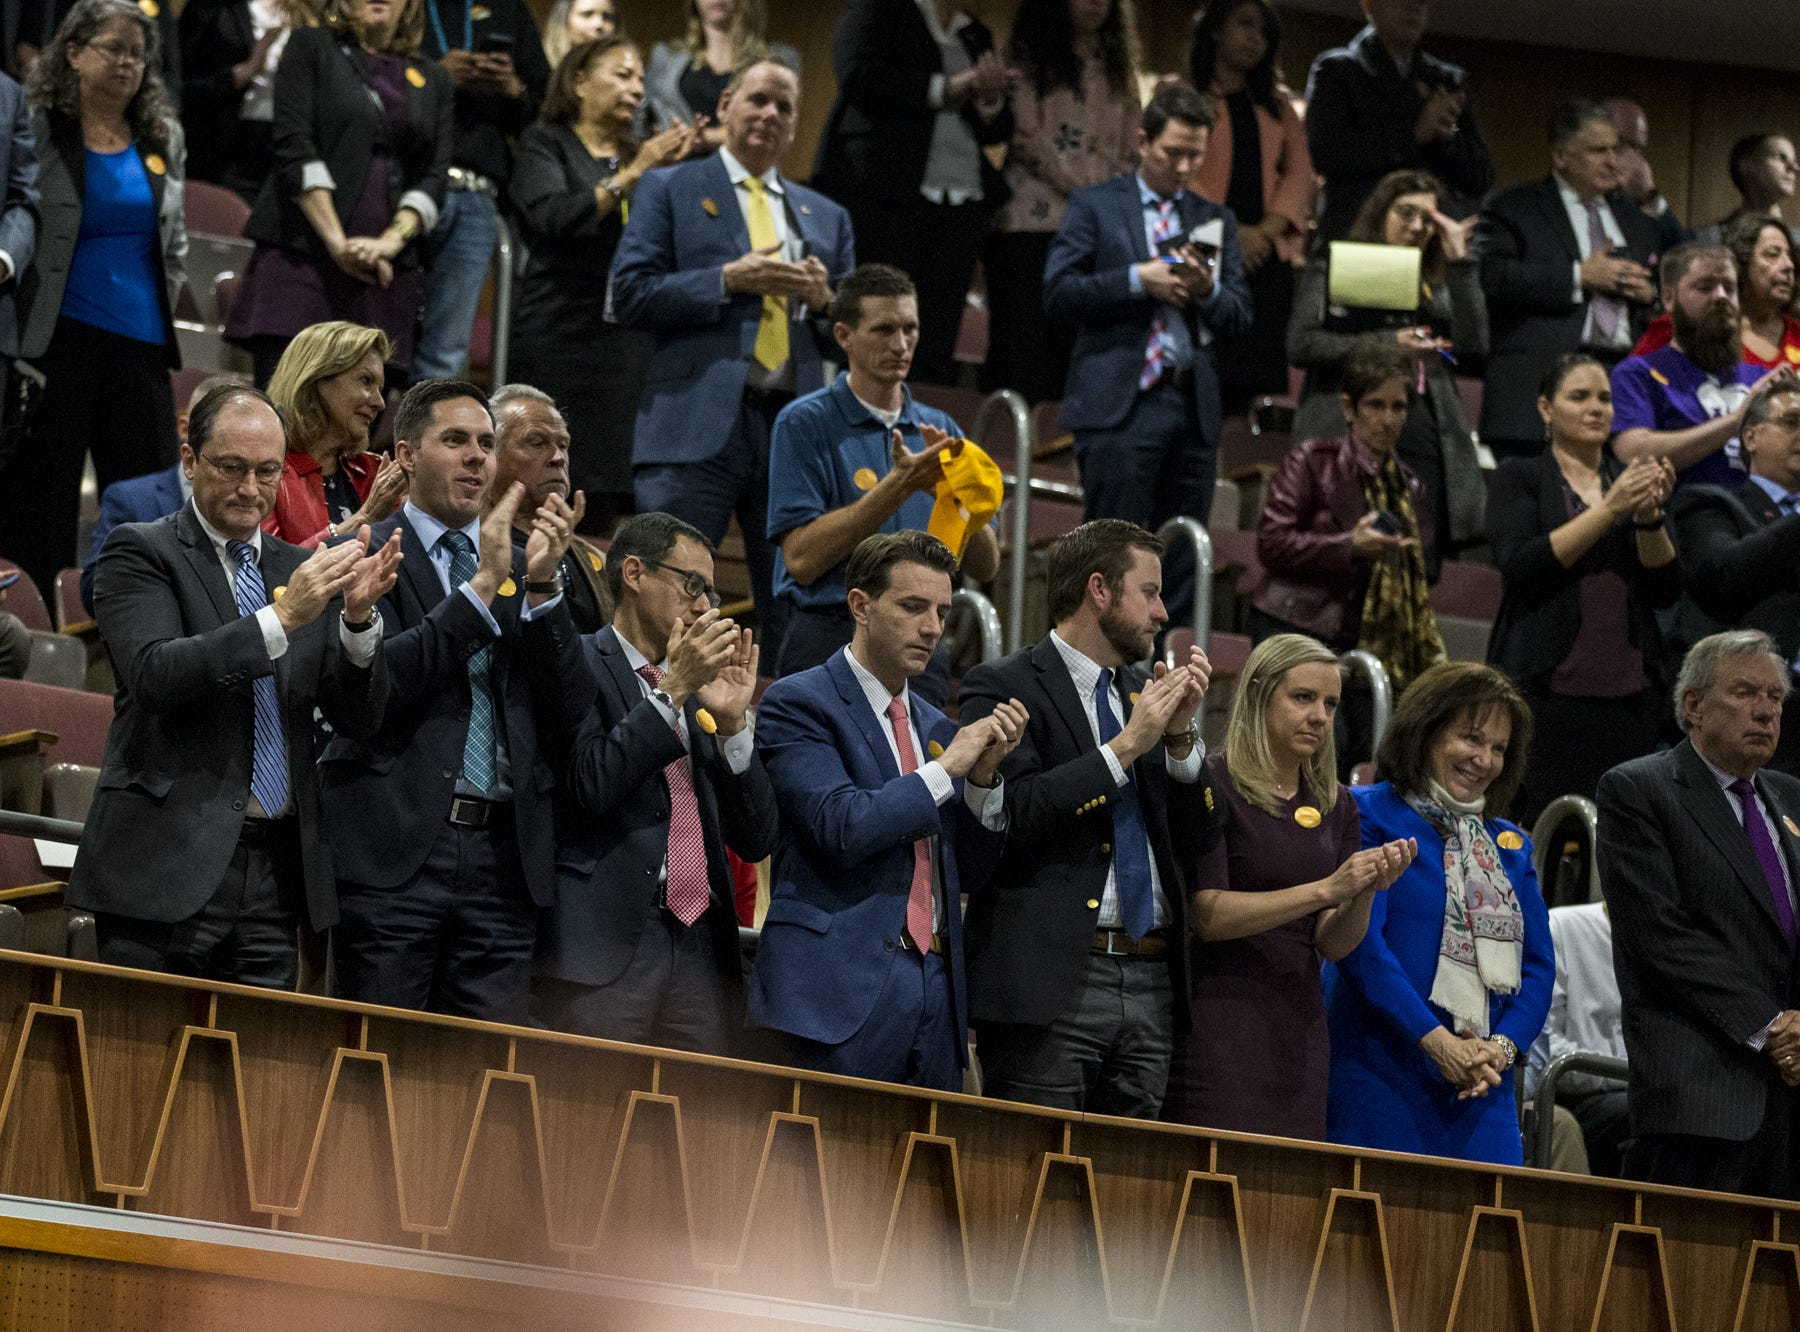 People in the gallery applaud during Gov. Doug Ducey's State of the State address on  Jan. 14, 2019, at the Arizona House of Representatives Chambers in Phoenix.